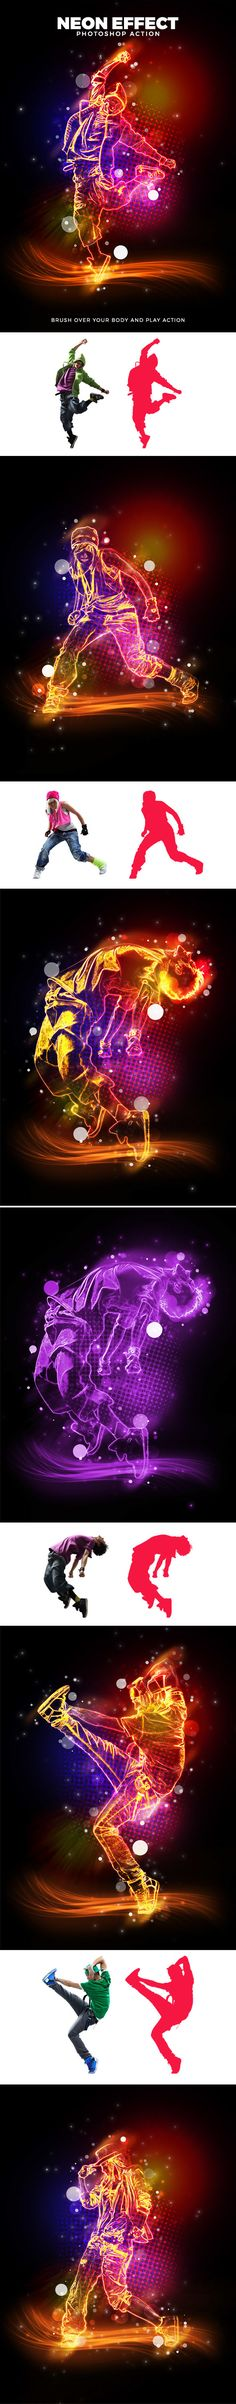 Neon Effect Photoshop Action. Download here: http://graphicriver.net/item/neon-effect-action/15121420?ref=ksioks